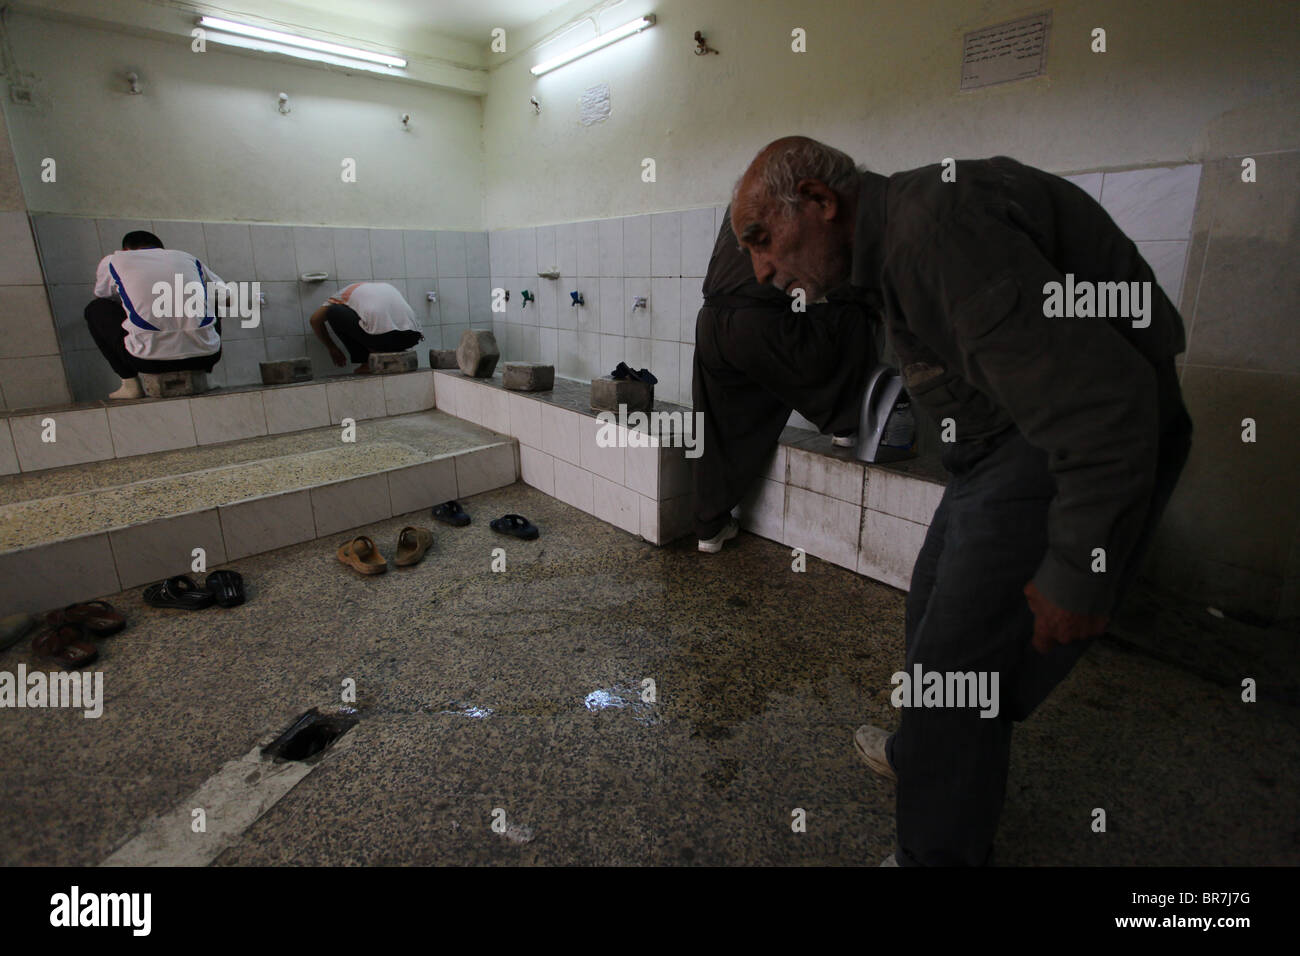 Kurdish men washing their feet in a public bathroom in Qaysari bazaar in the city of Erbil also spelled Arbil or - Stock Image